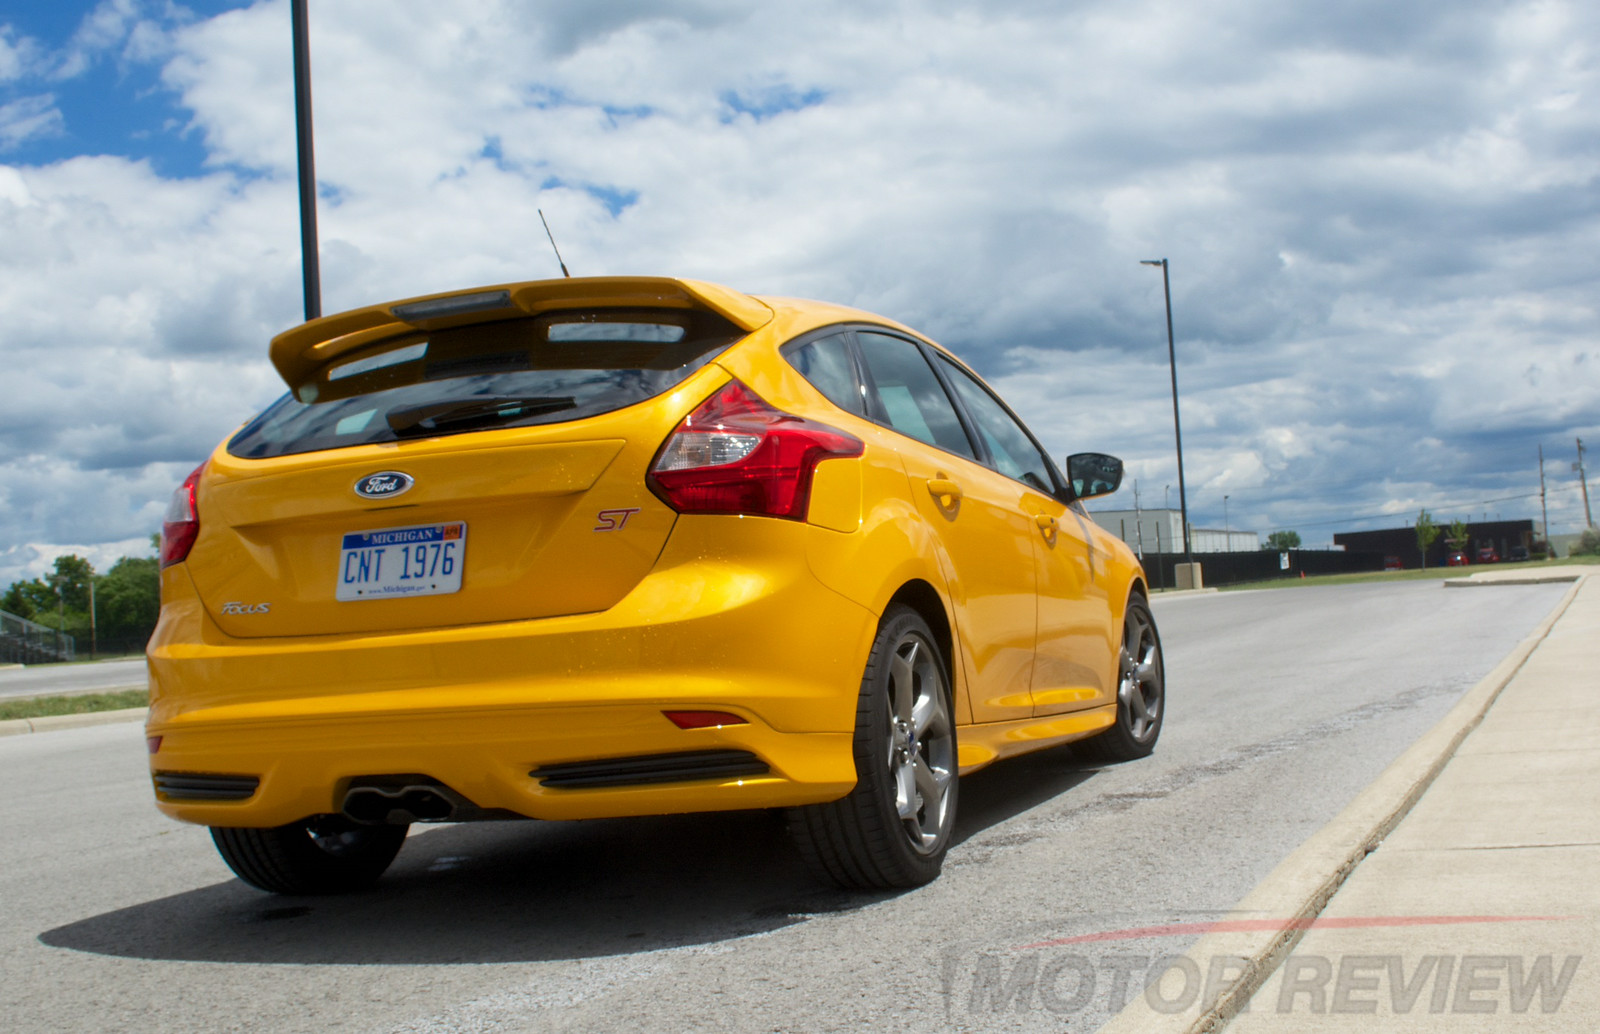 2014 ford focus st review 20 motor review. Black Bedroom Furniture Sets. Home Design Ideas